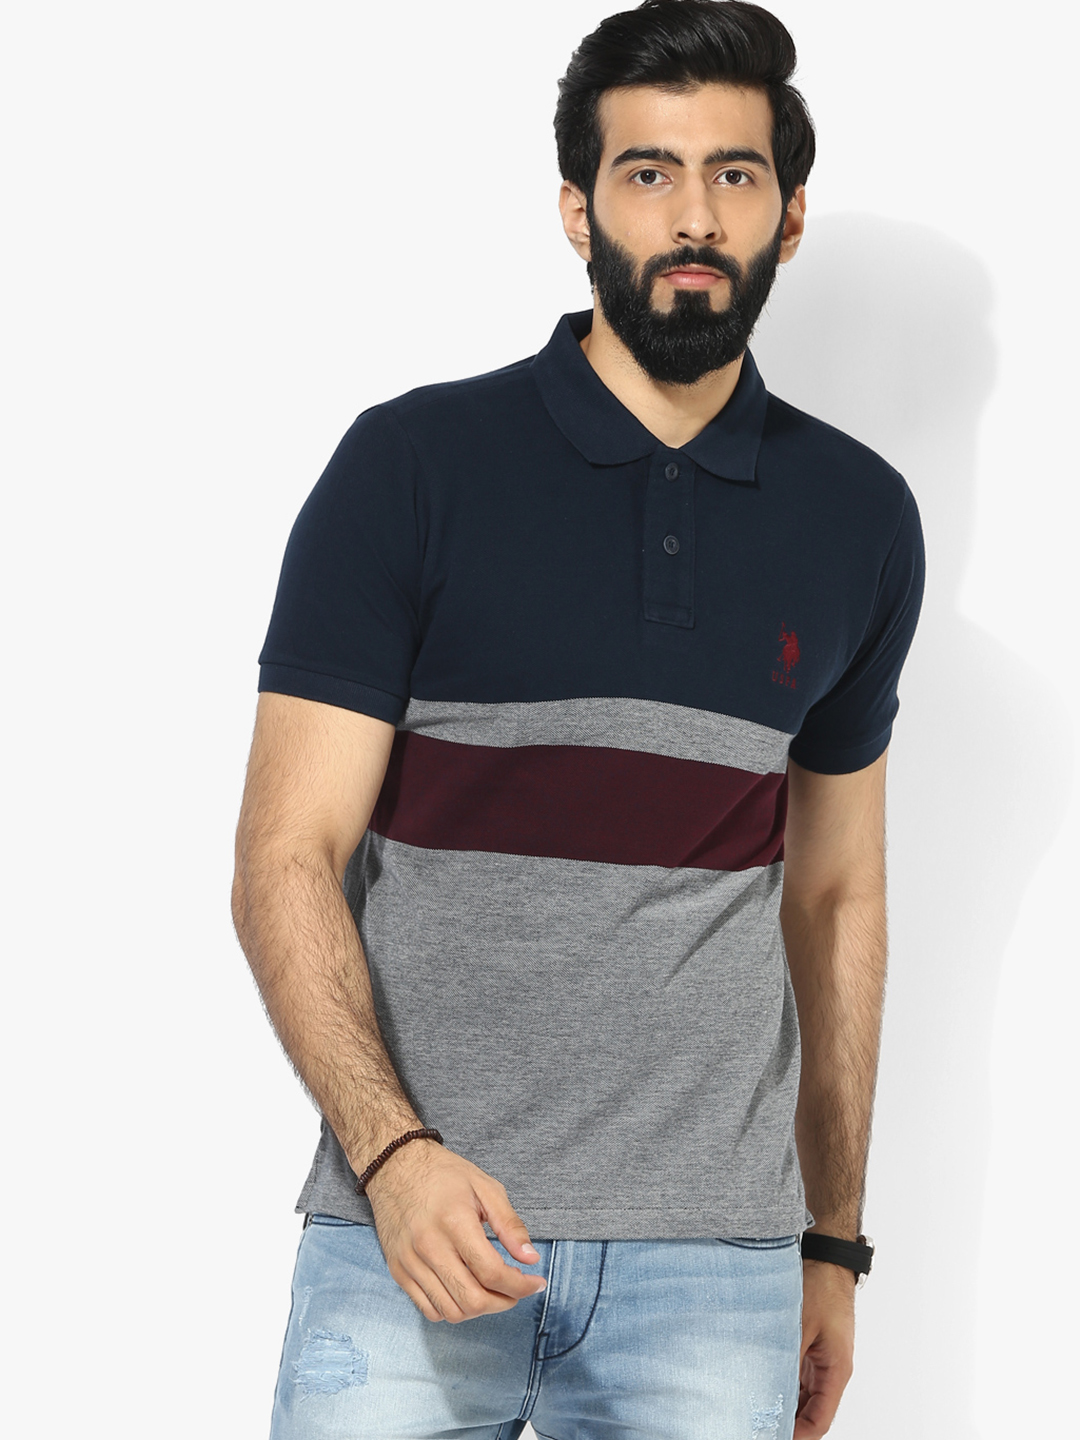 U s polo navy grey cotton slim fit t shirt g3 mts5220 for Navy slim fit shirt